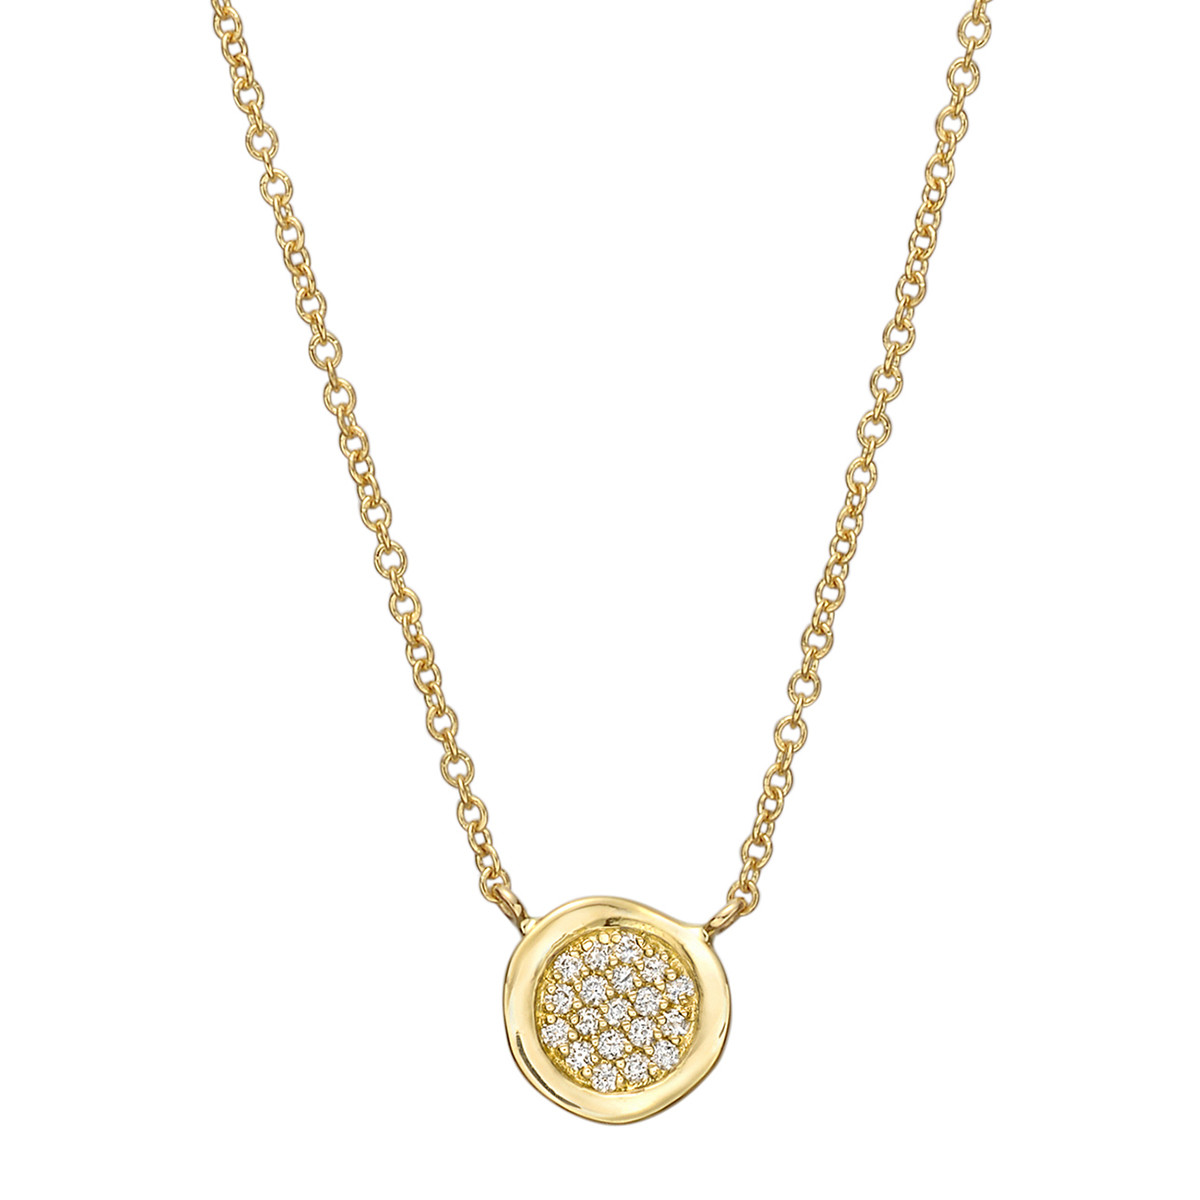 Small 18k Yellow Gold & Diamond Disc Pendant